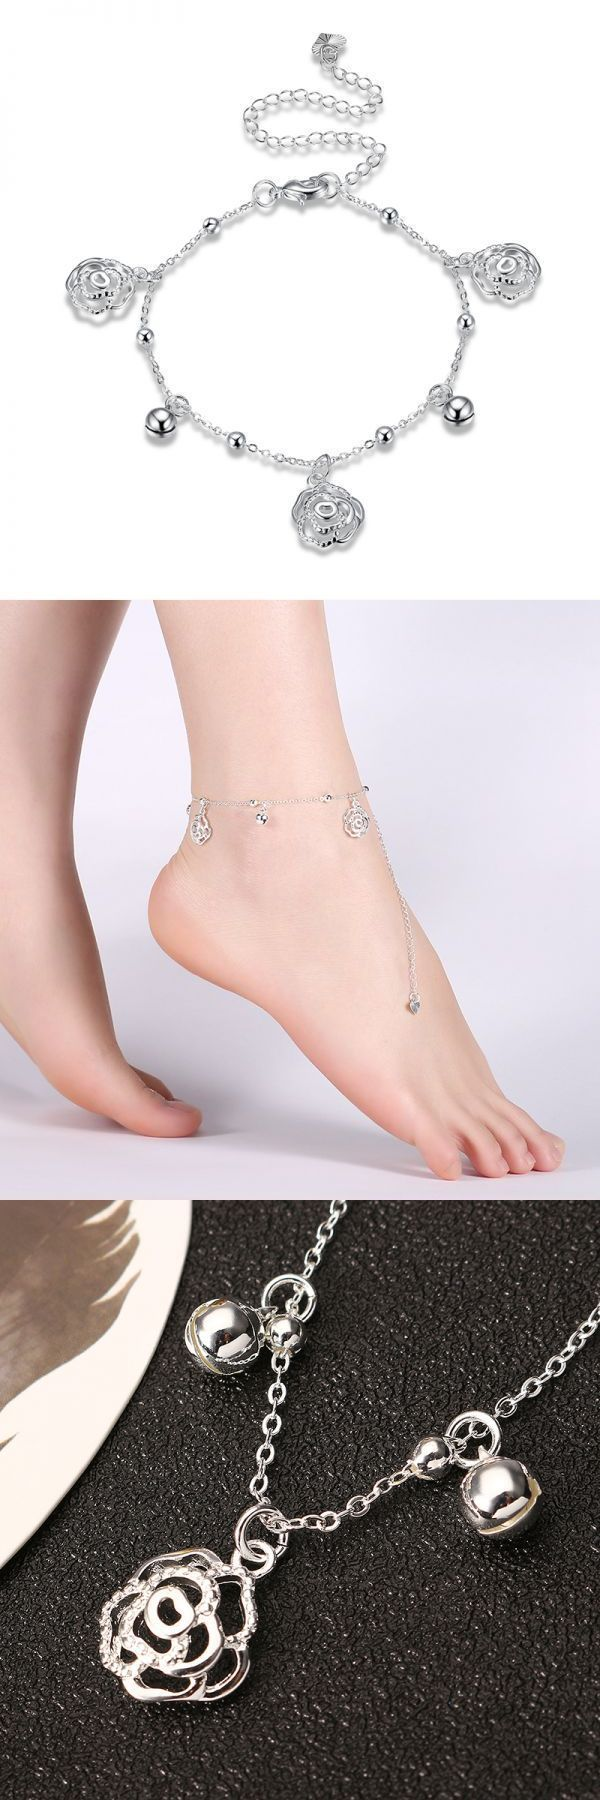 Rose and bell pendant silver plated adjustable anklet women jewelry  anklets uk #1 #gram #gold #anklets #anklets #online #anklets #primark #anklets #quotes